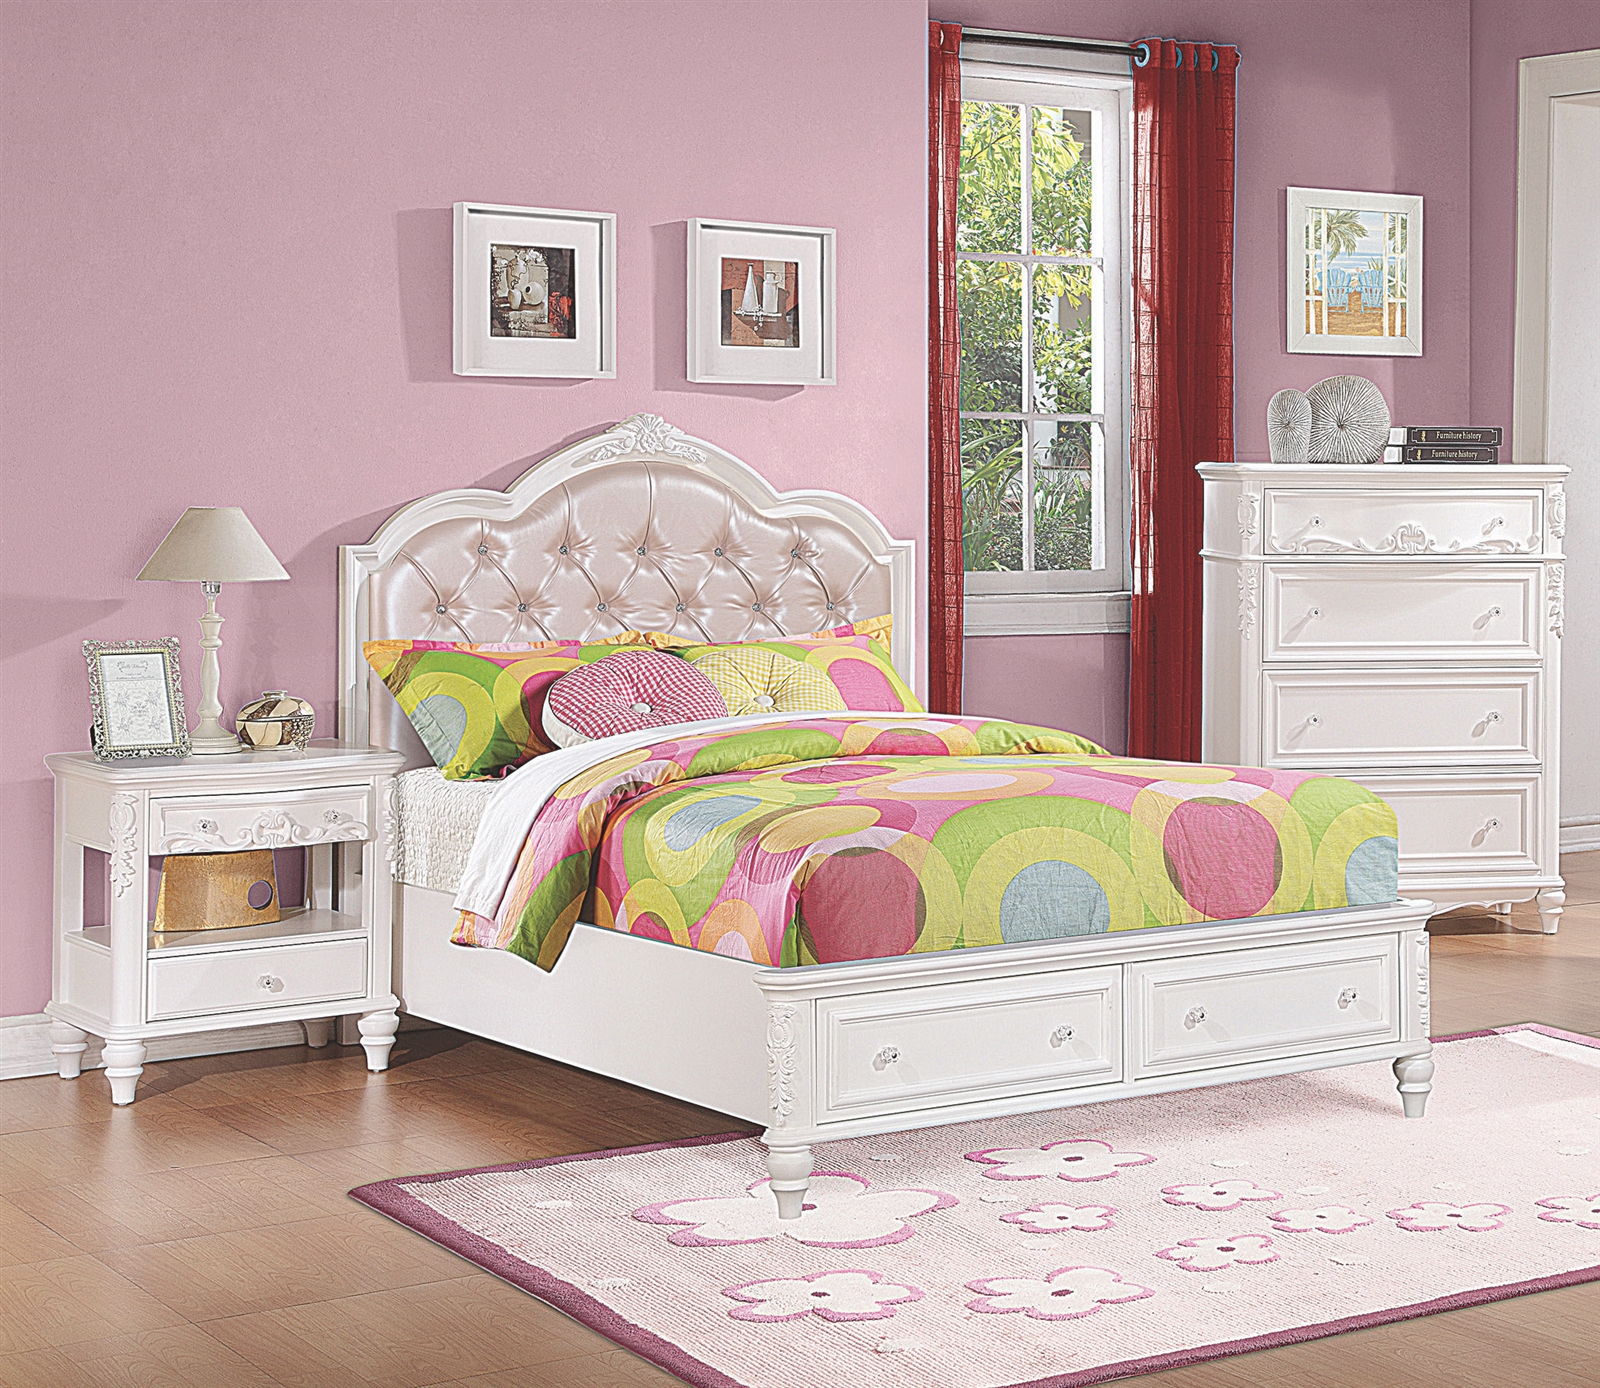 Bright White Wooden Princess Bed With Pink Button Tufted Headboard 2 Storage Drawers In Footboard